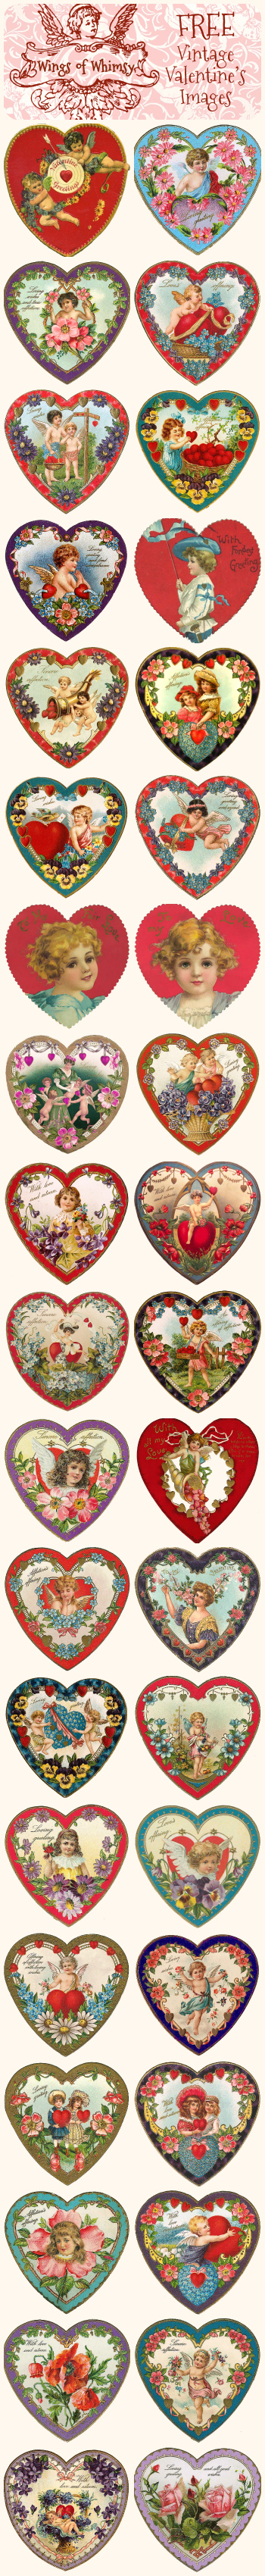 Wings of Whimsy: Valentine Hearts - free for personal use #vintage #ephemera #printable #freebie #valentine #cherub #heart